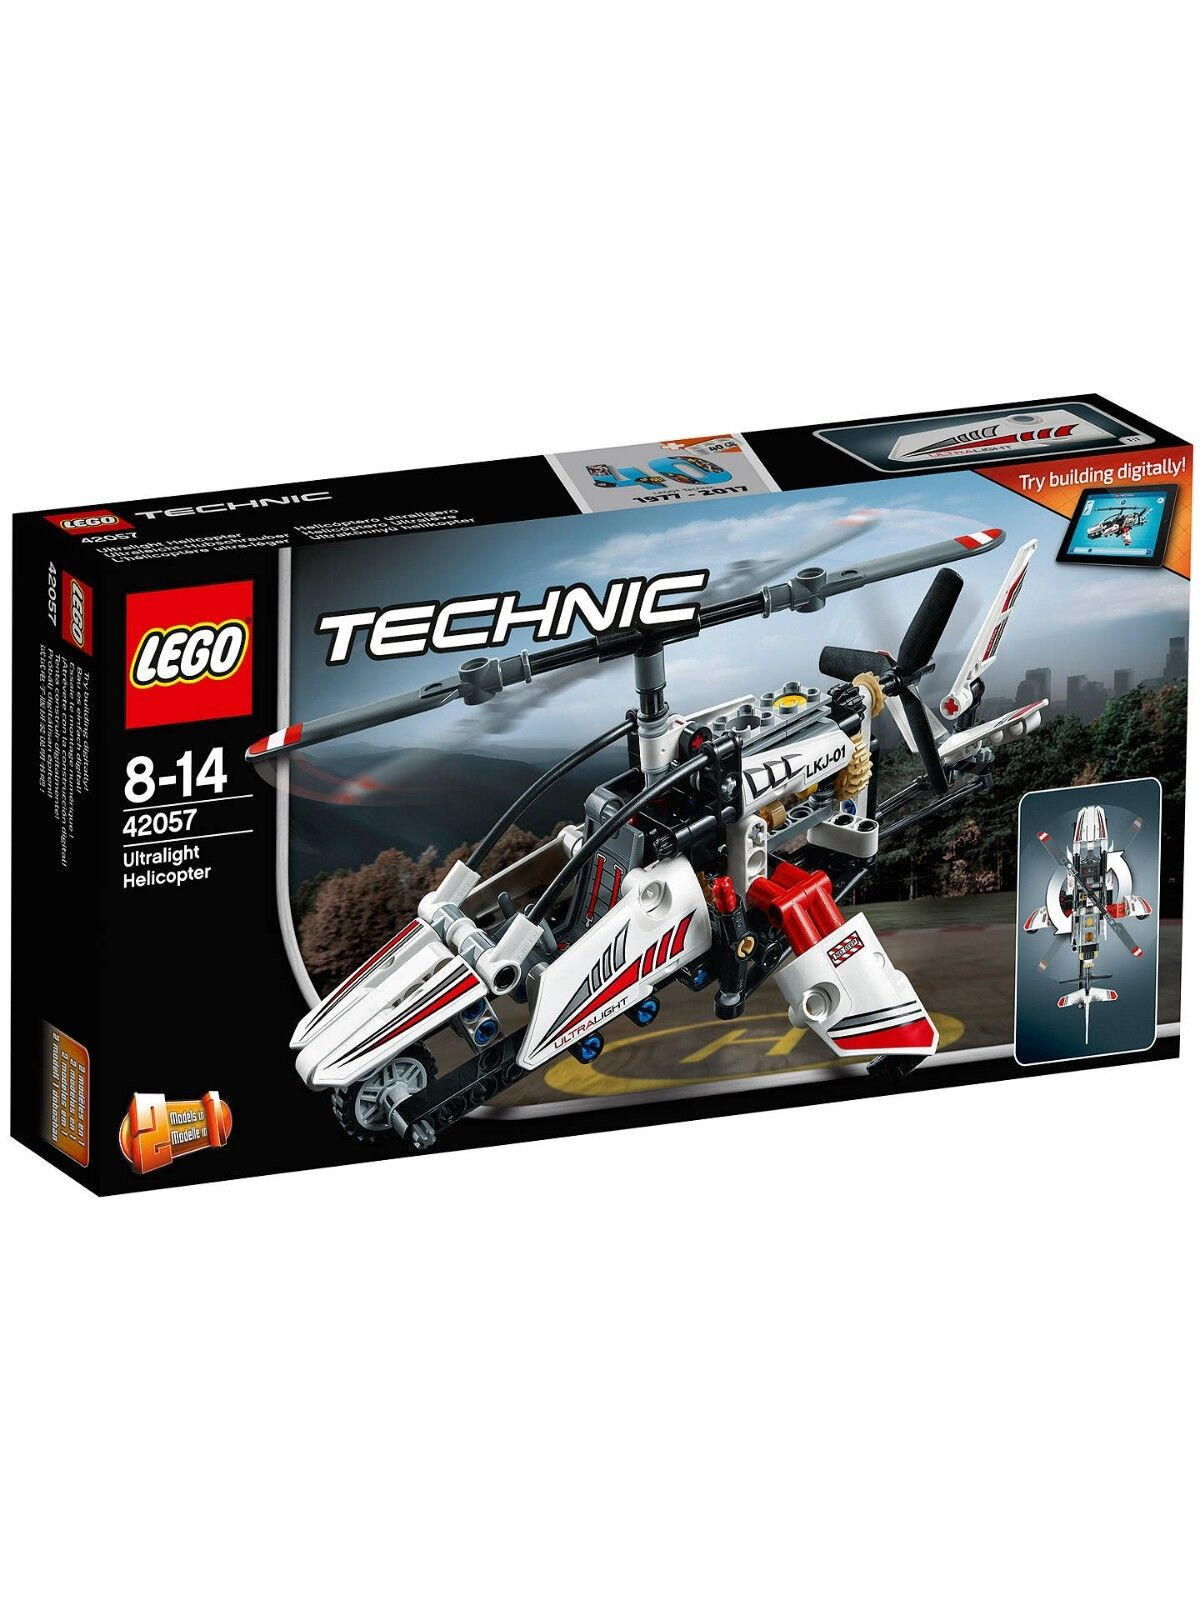 LEGO Technic 42057 UltraLight Helicopter NEW SEALED Worldwide Shipping